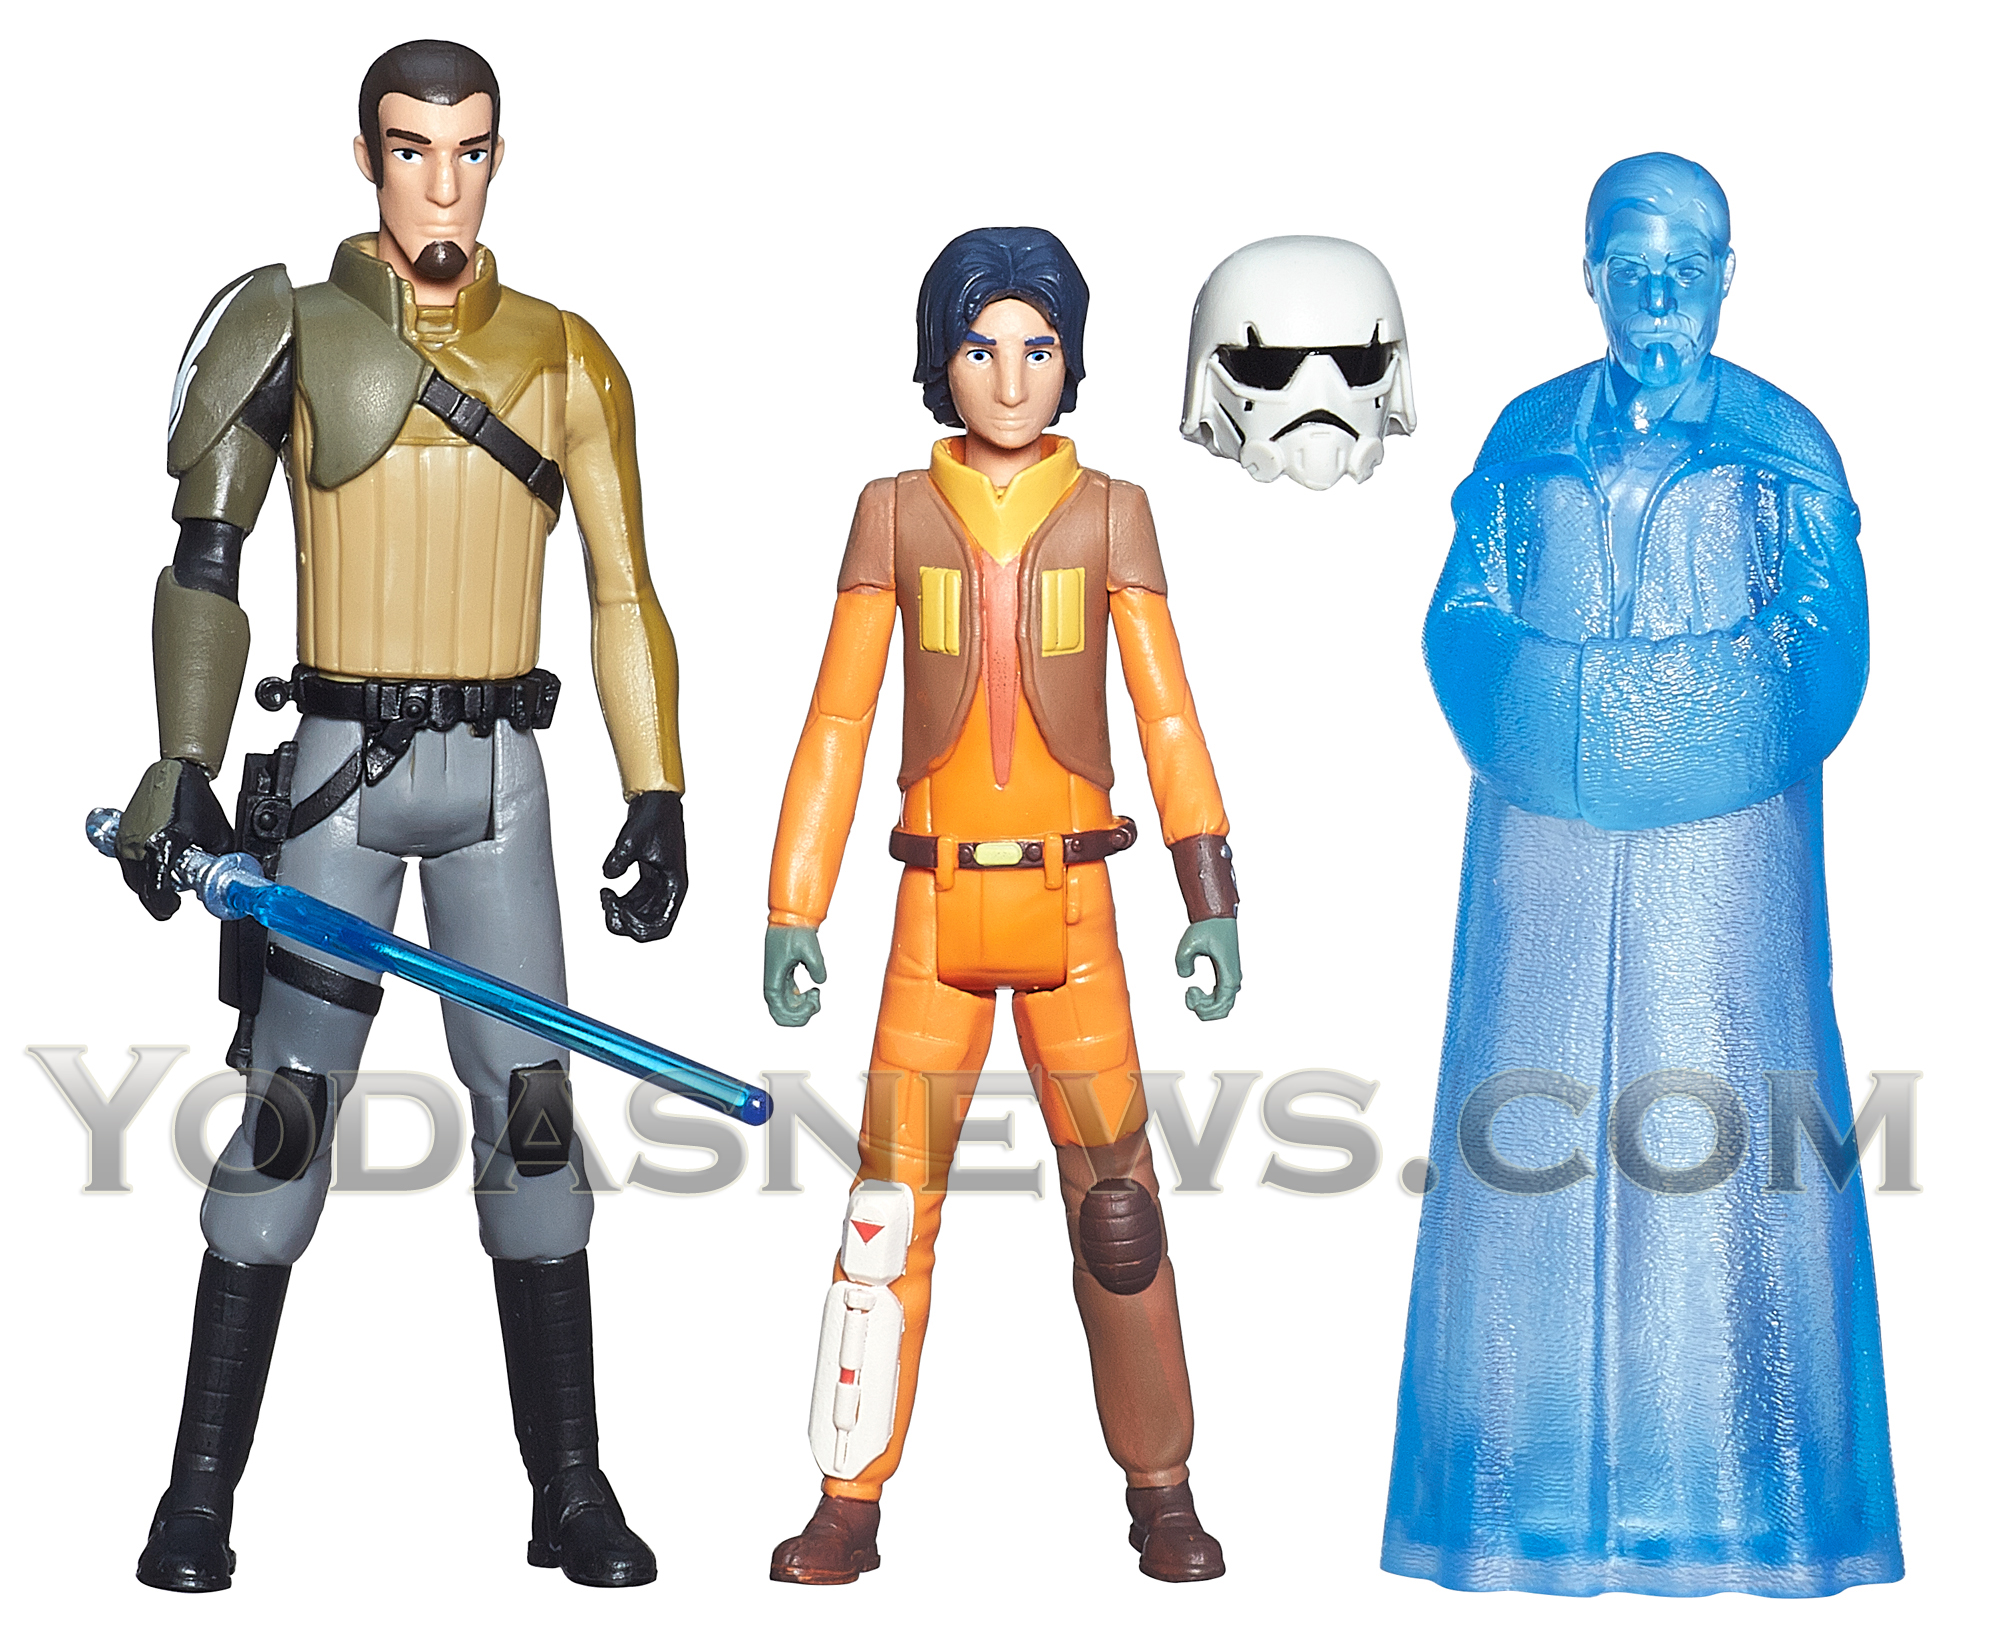 Star Wars Toys : Tru exclusive star wars rebel mission series the ghost